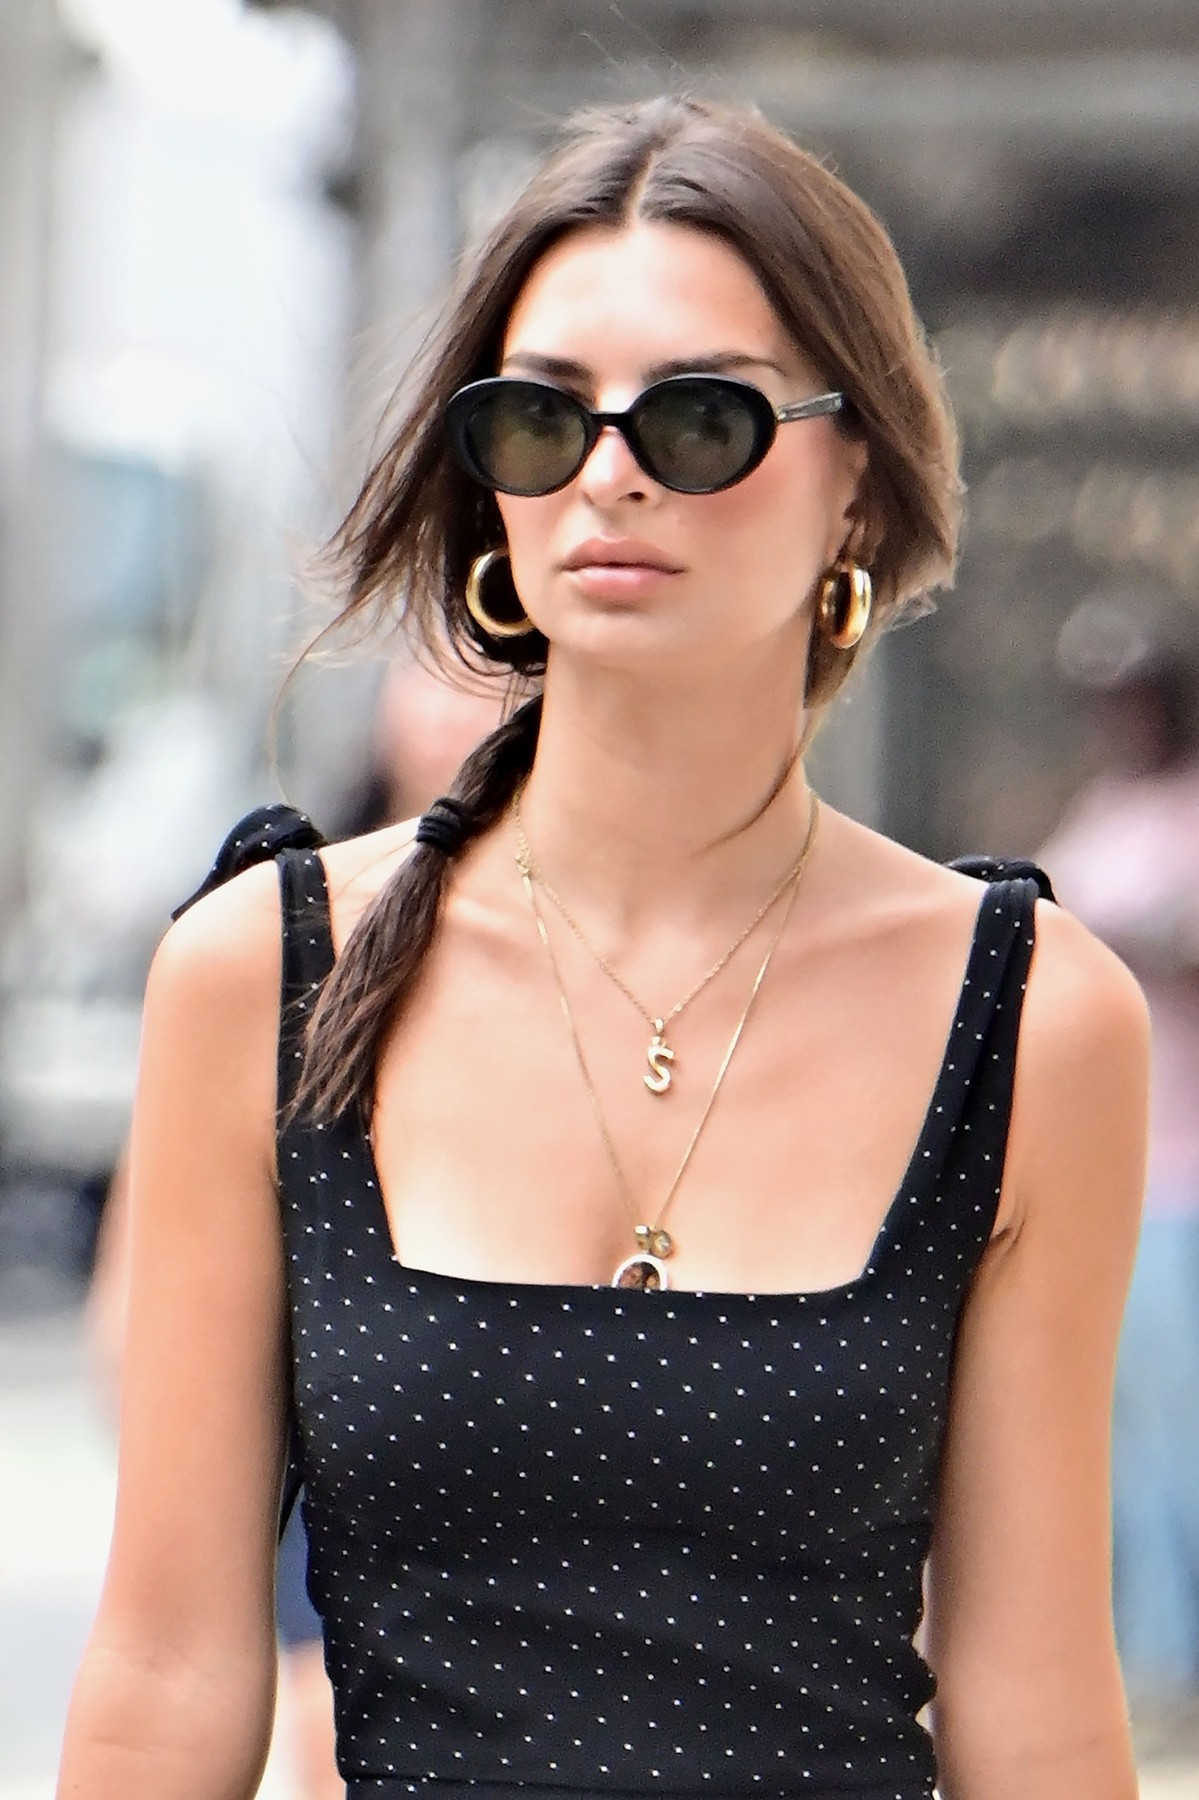 New York, NY  - Model, Emily Ratajkowski looks stylish in a black polka dot dress as she runs her early morning errands in New York. Emily is seen wearing a necklace with an 'S' pendant to represent her love for husband Sebastian Bear-McClard.  BACKGRID USA 19 AUGUST 2019, Image: 466117013, License: Rights-managed, Restrictions: RIGHTS: WORLDWIDE EXCEPT IN FRANCE, GERMANY, POLAND, Model Release: no, Credit line: Profimedia, Backgrid USA